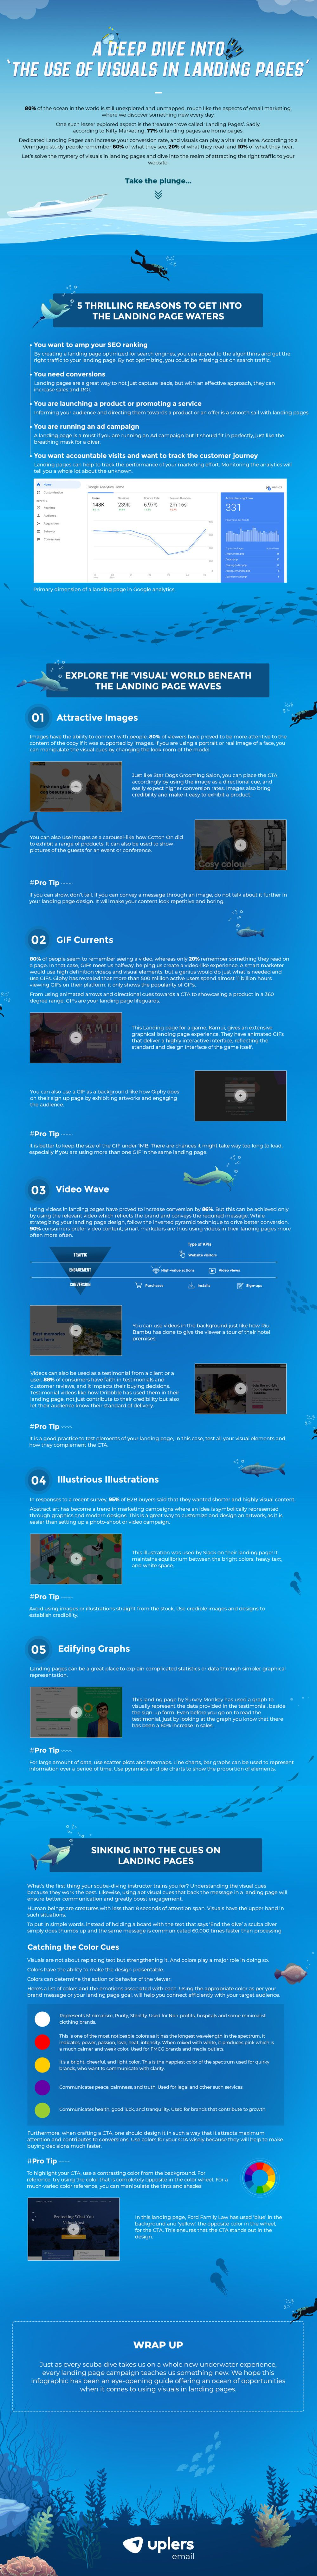 Landing Page Visuals Infographic